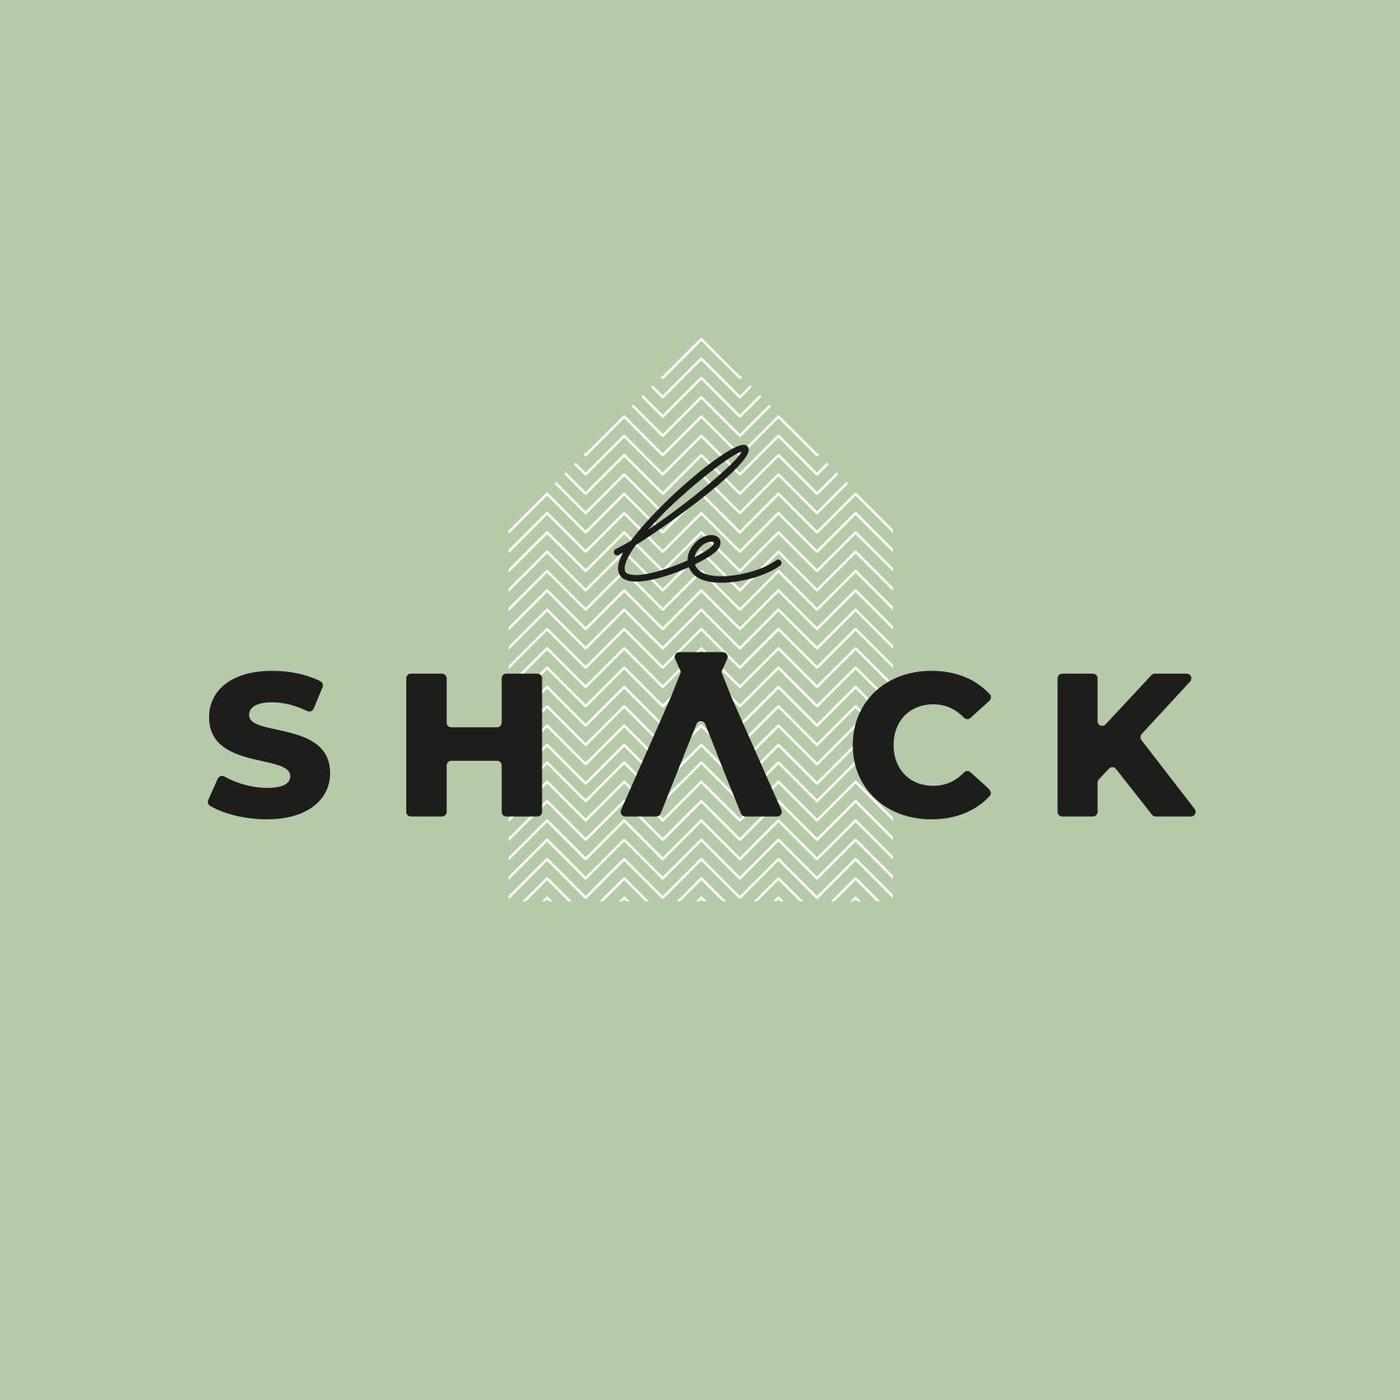 Et Hop, by Le Shack !